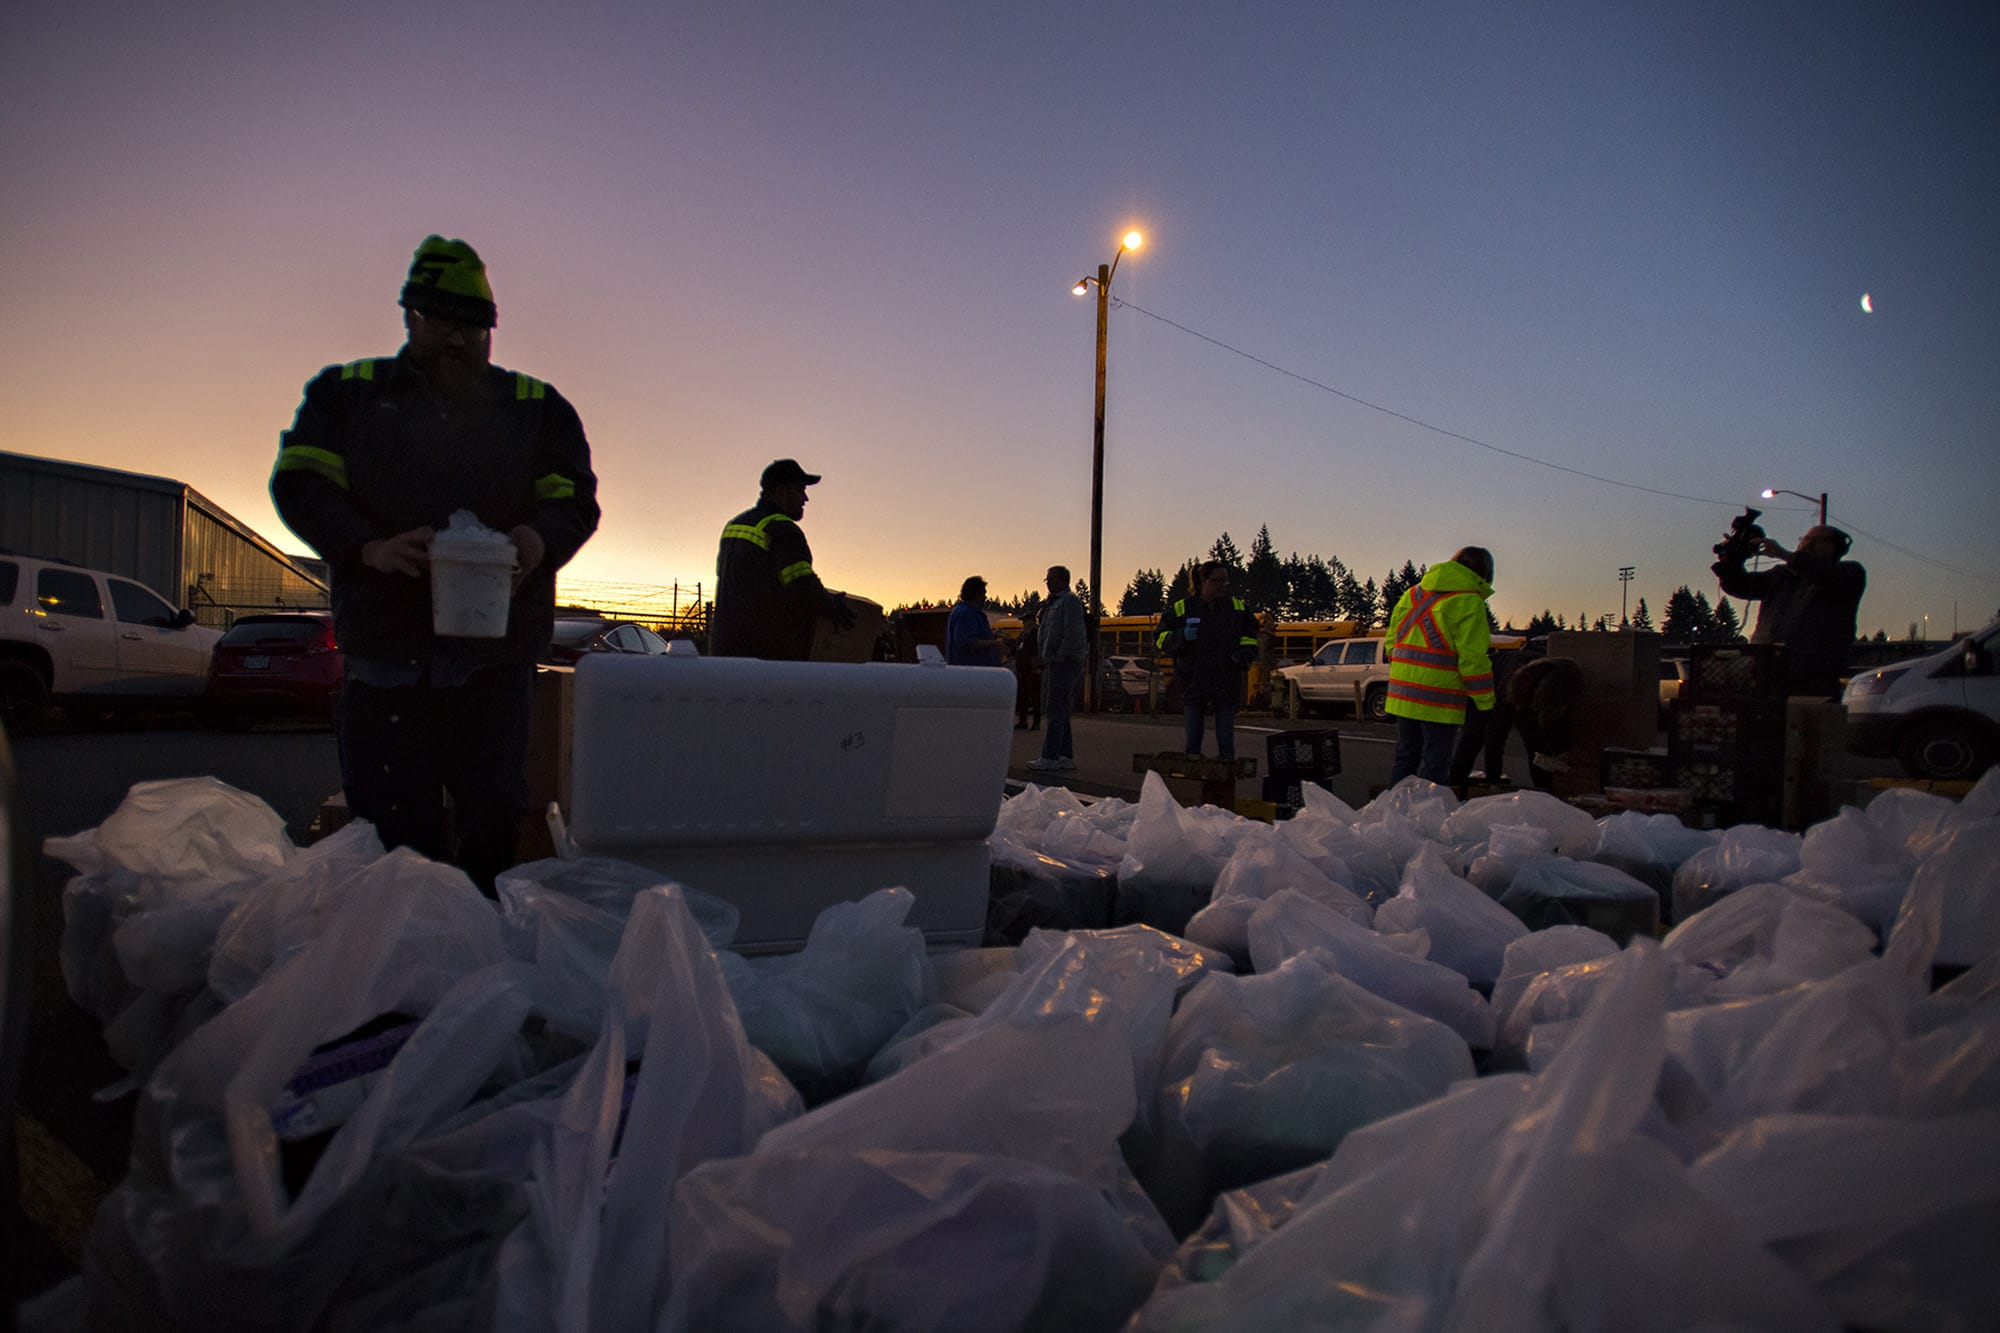 Michael Vestal, a mechanic with Evergreen School District, left, adds ice to boxes of milk near Burton Elementary School as the sun rises before drivers pick them up to be distributed to local students on Tuesday morning, March 17, 2020. (Amanda Cowan/The Columbian)